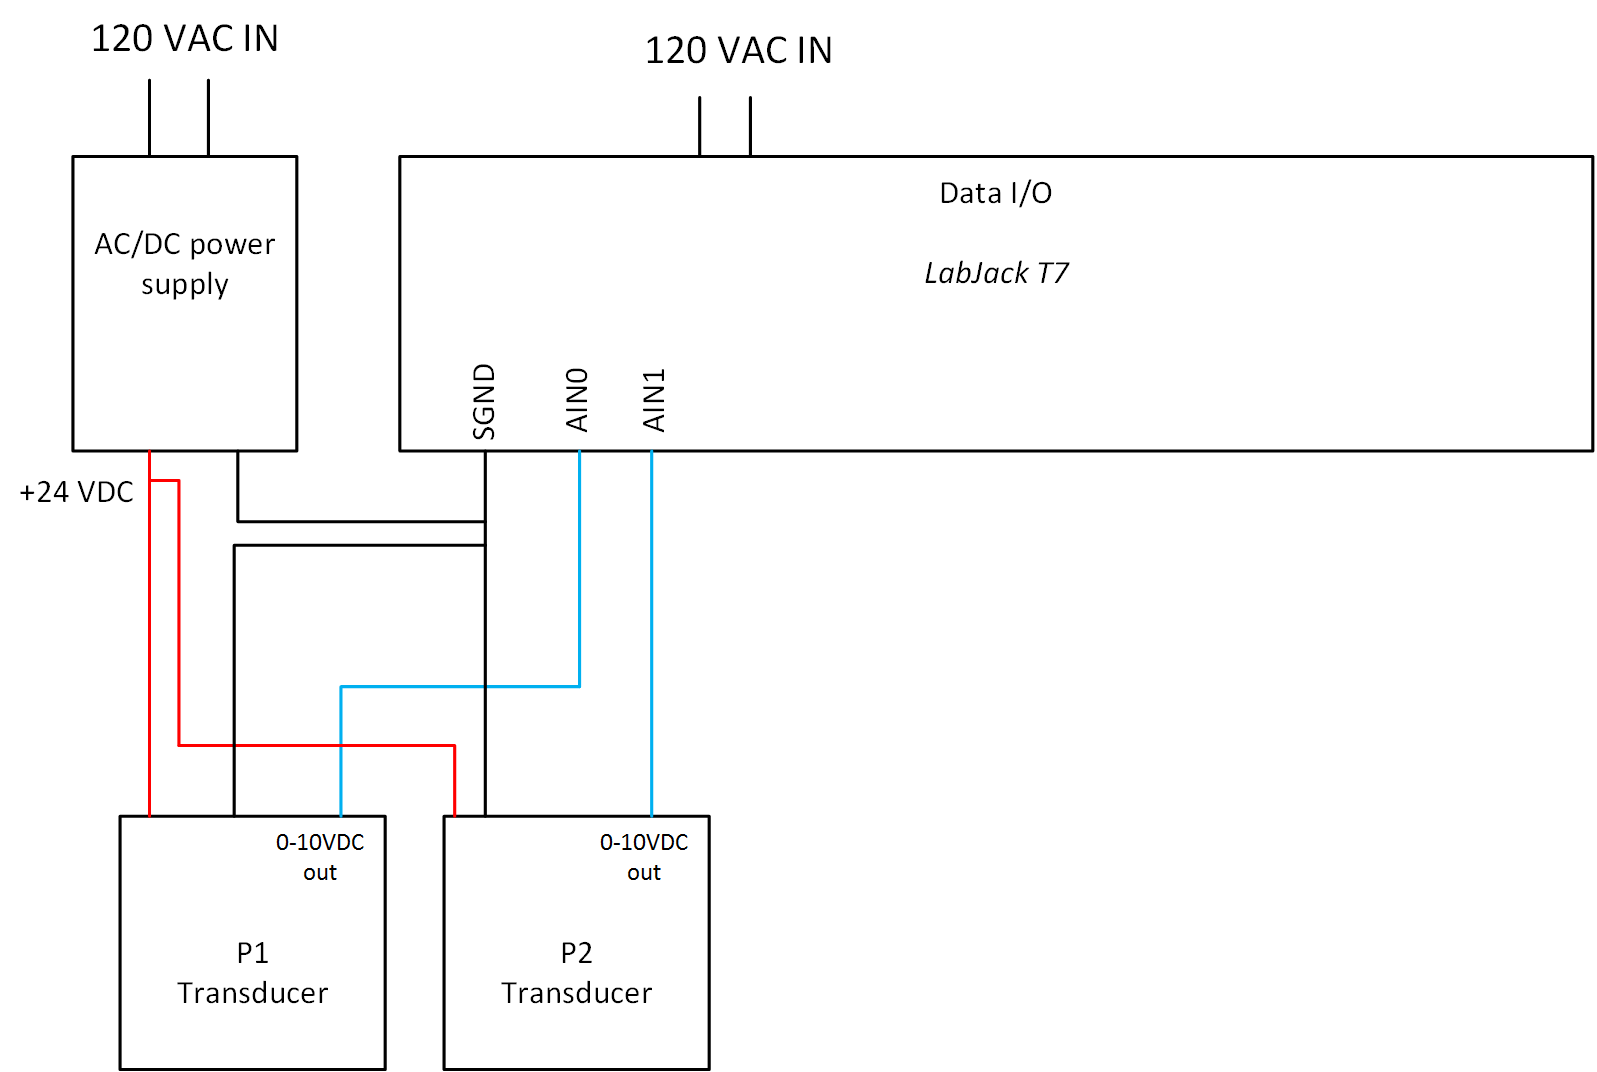 Pressure Transducer Common Connection Labjack 24 Vdc Power Supply Schematic Block Diagram P Trans Only V11